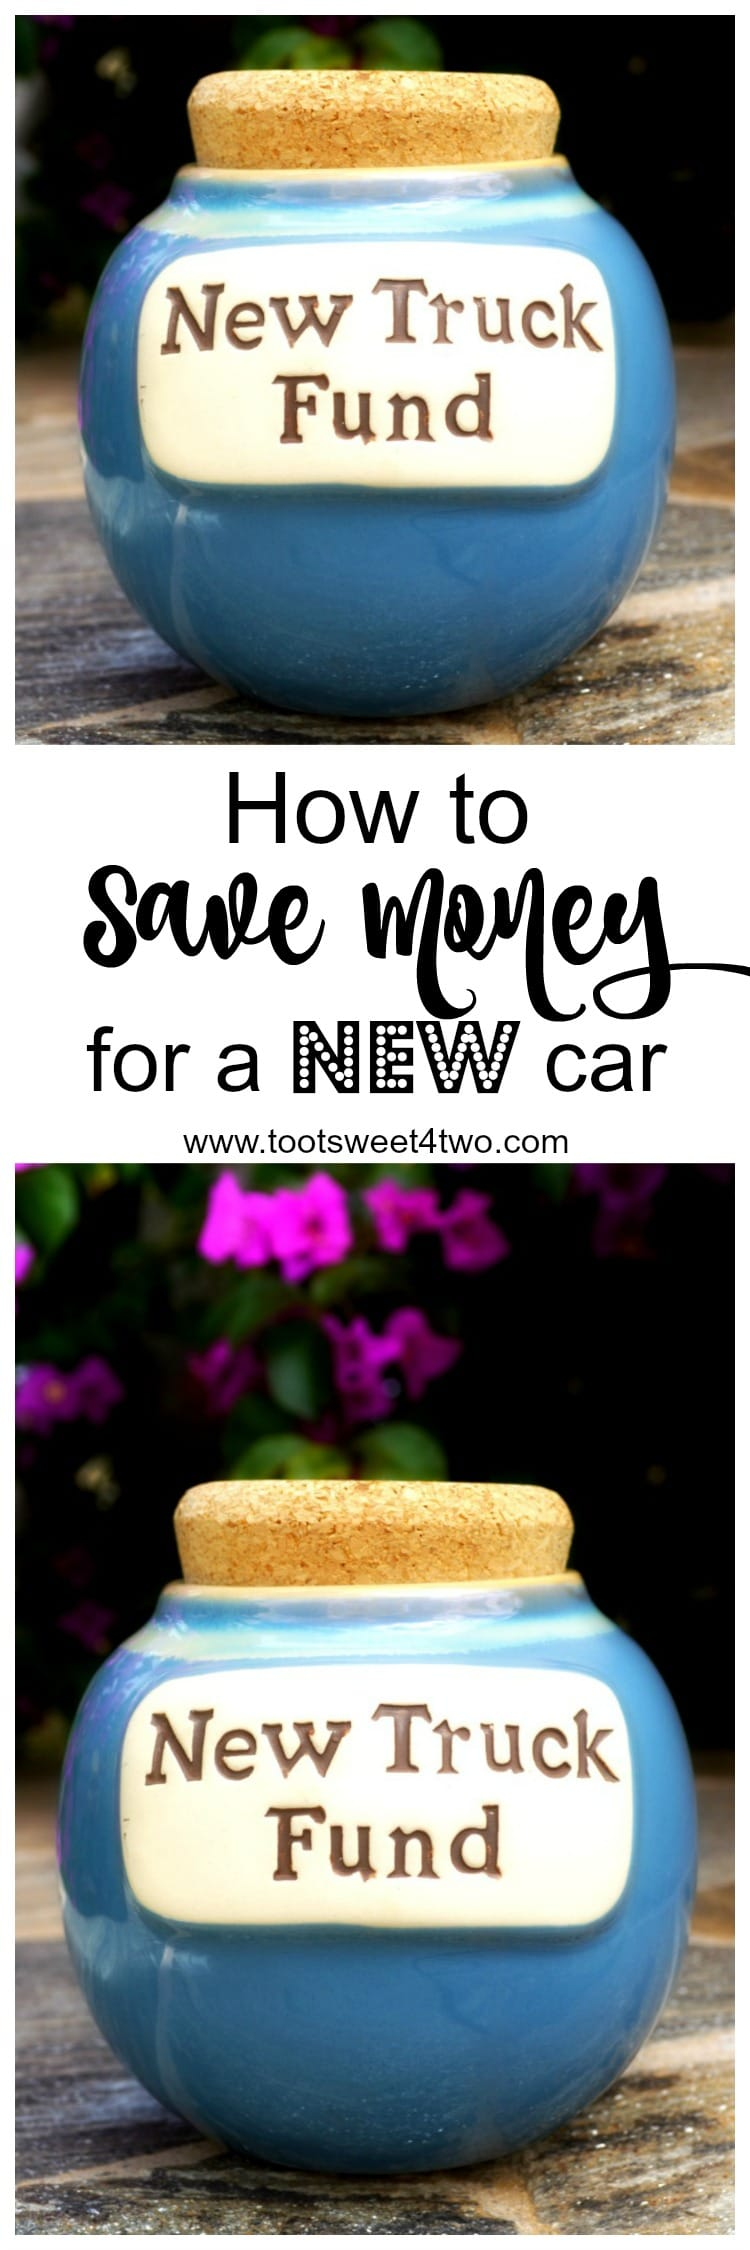 How to Save Money for a New Car - Toot Sweet 4 Two